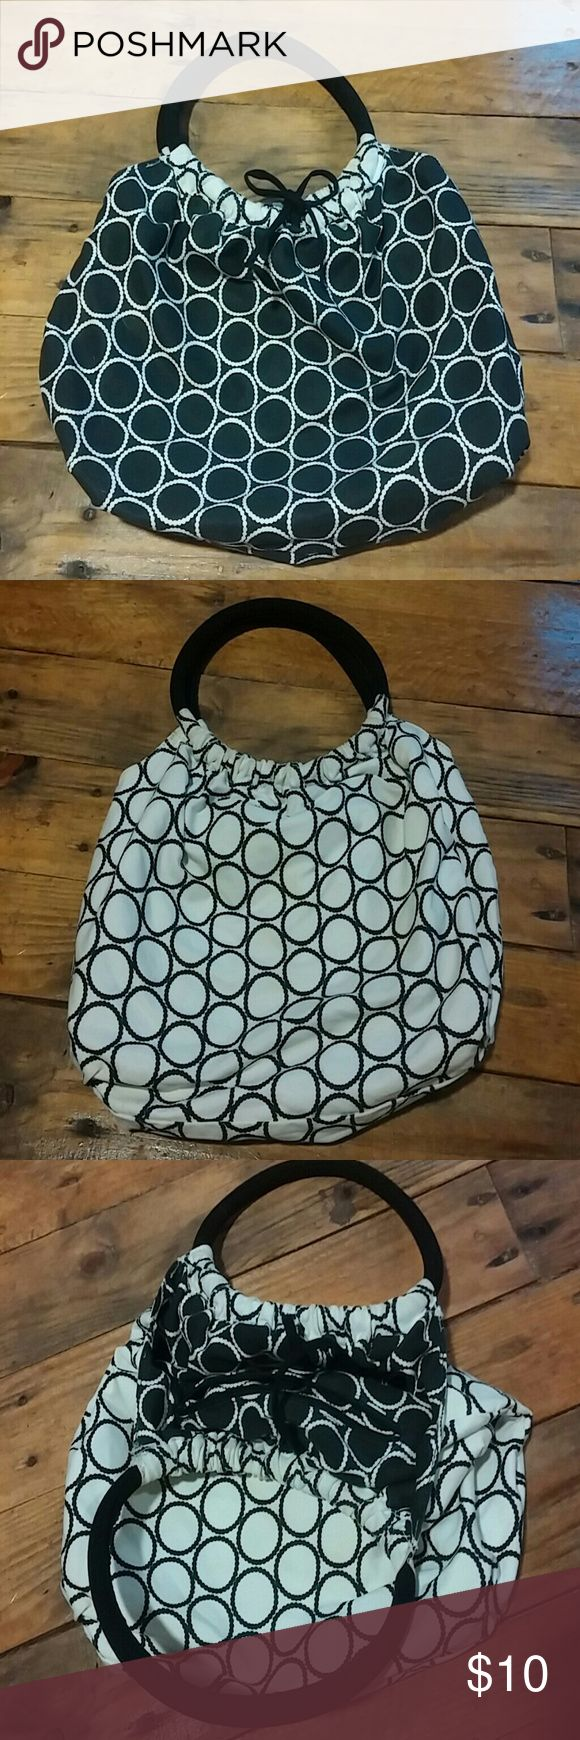 BLACK AND WHITE REVERSIBLE POLKA DOT PURSE So cute! Canvas hobo purse with polka dots, bag is reversible - black with white on one side and white with black on the other side. Handles are soft and rounded.   Measures 13 x 10 Bags